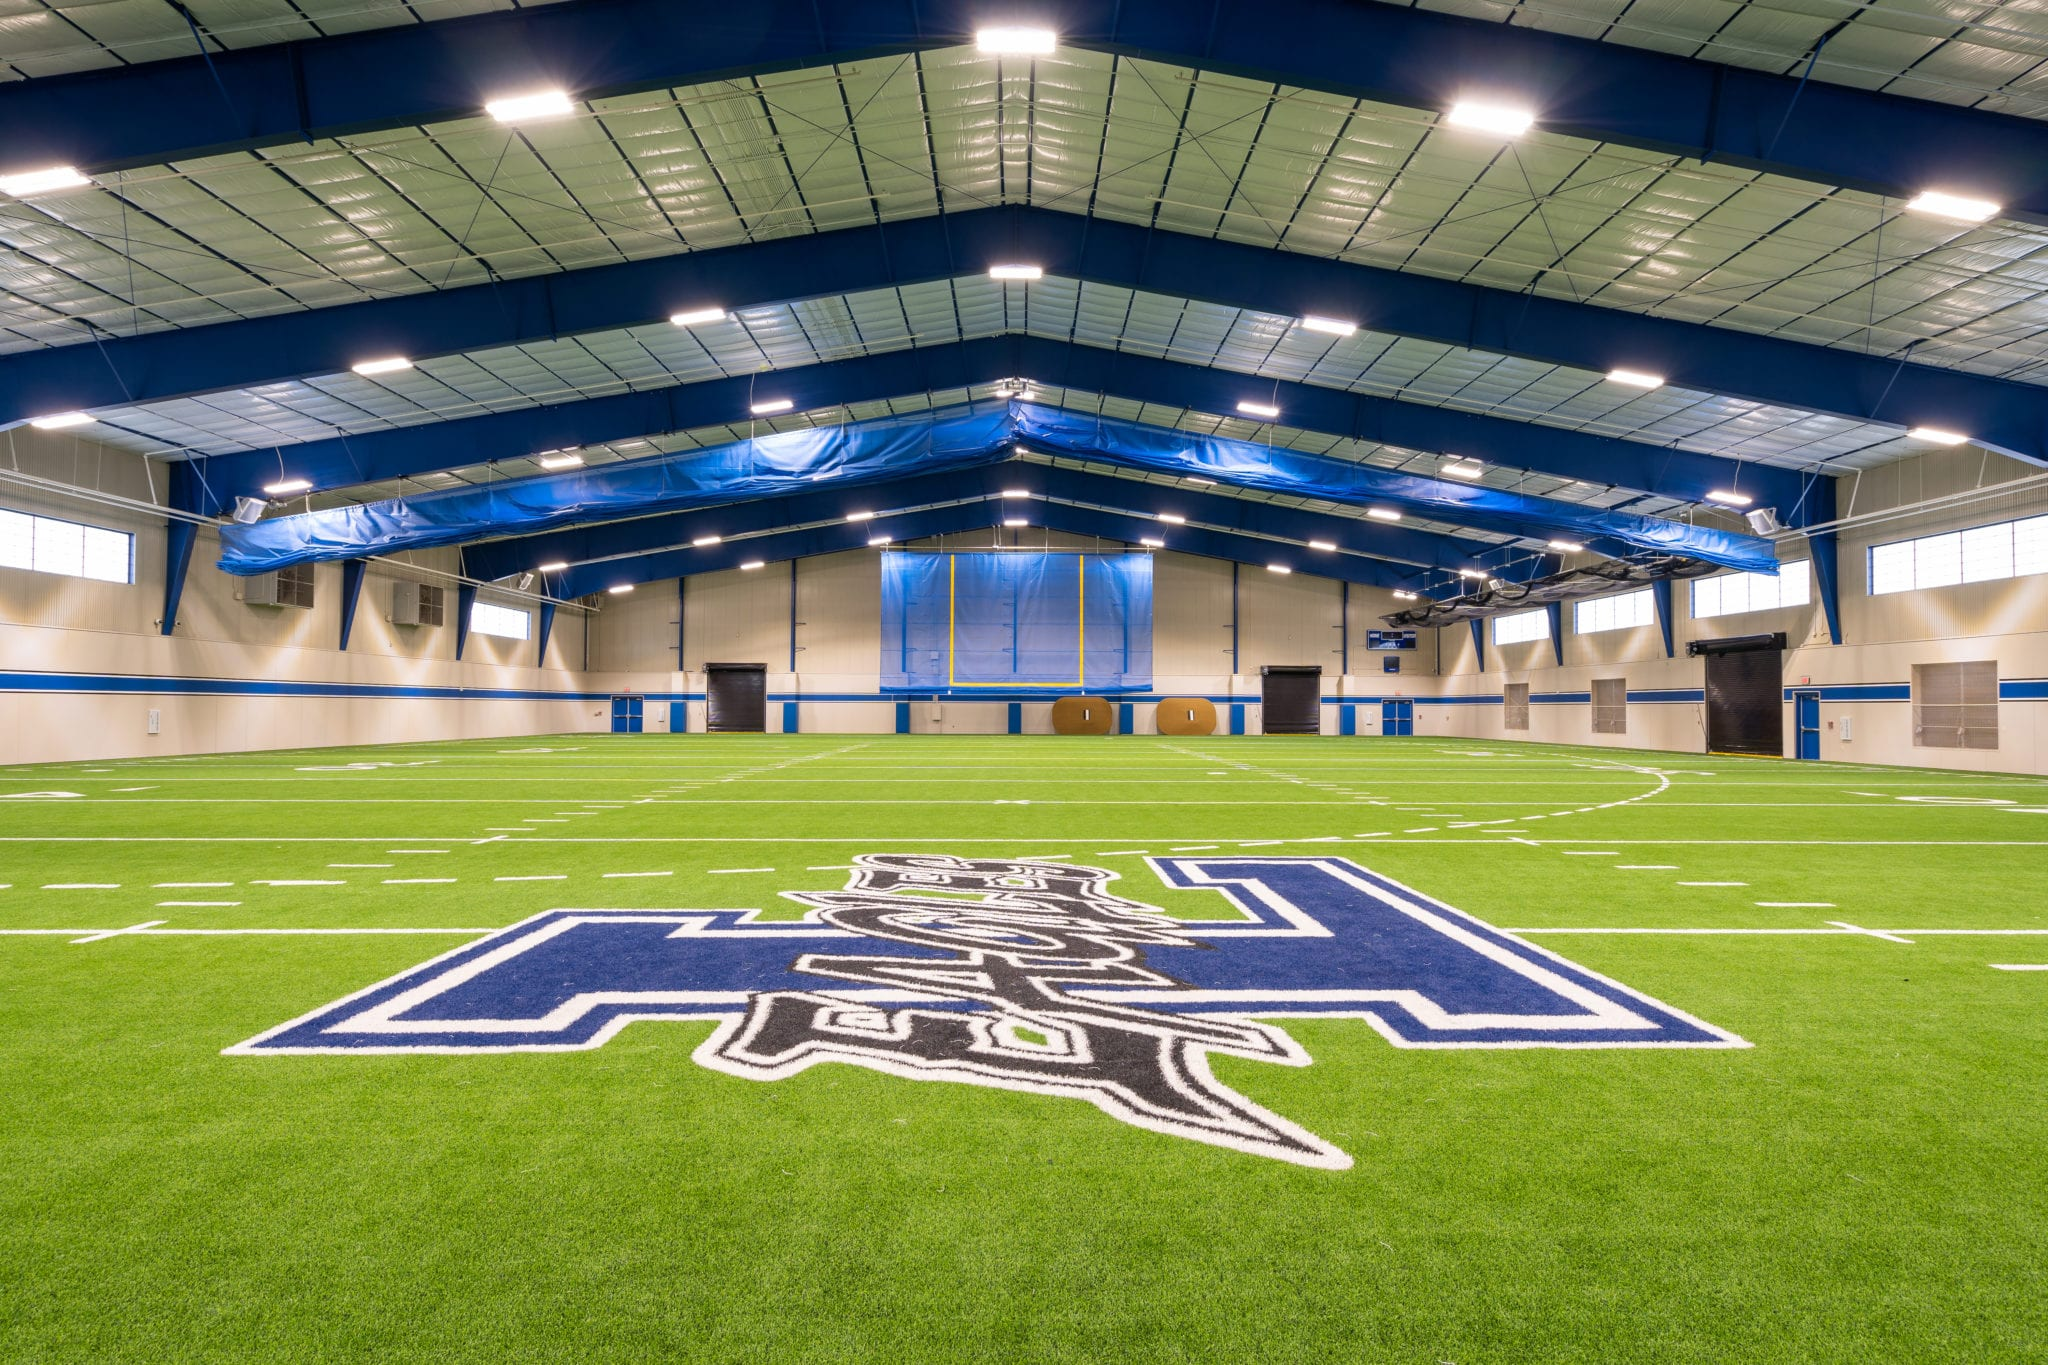 Lindale ISD Indoor Practice Facility